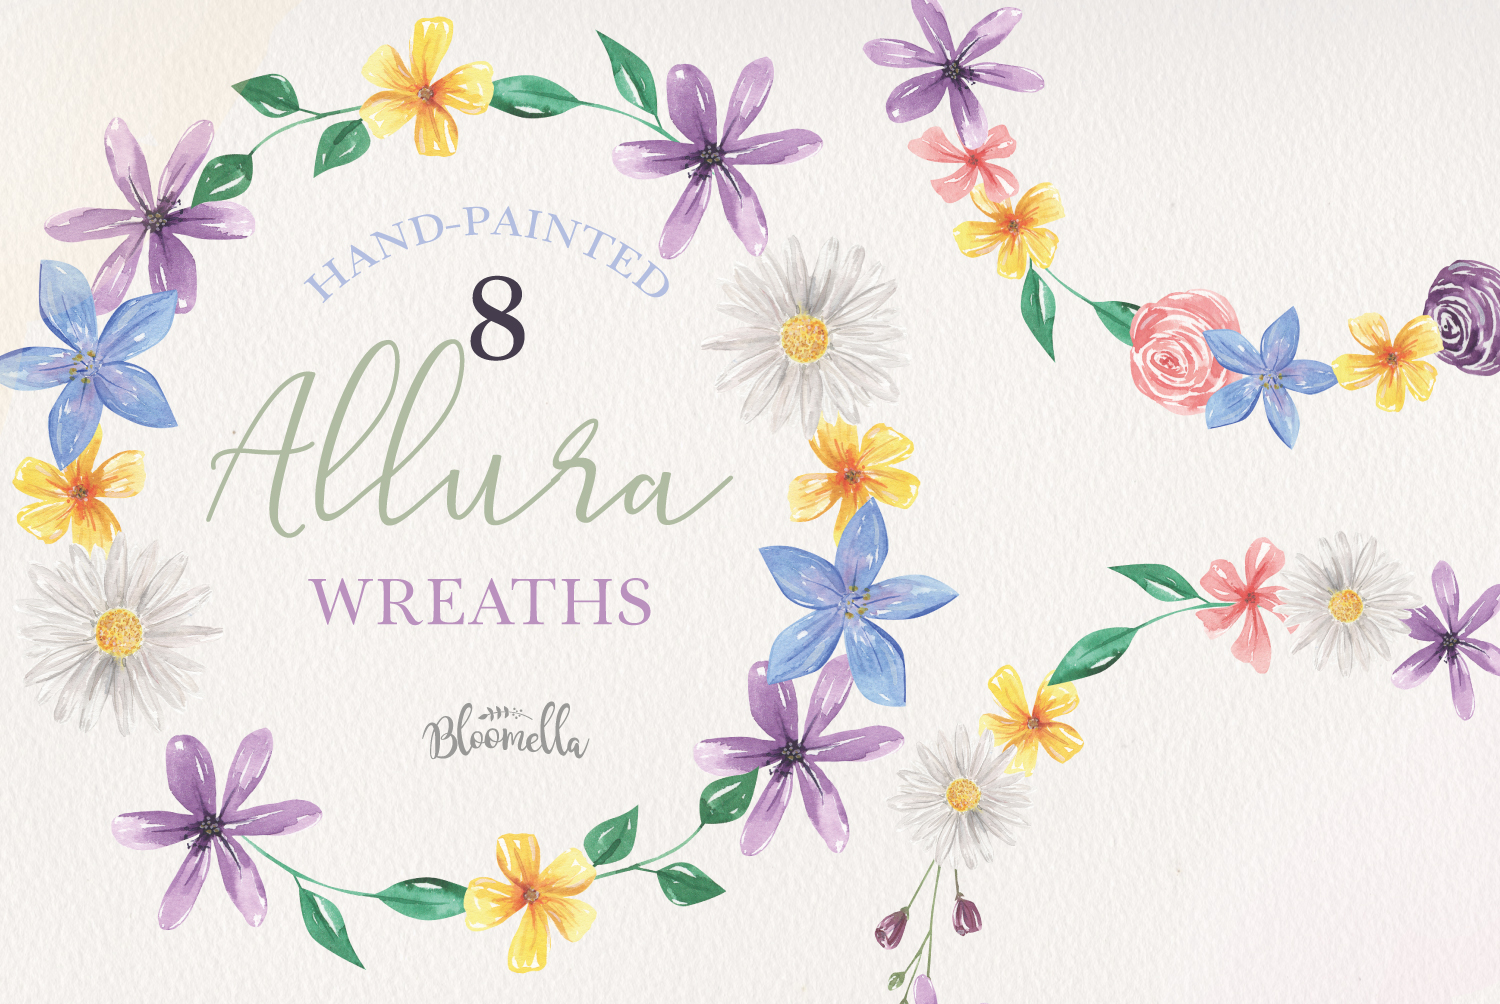 Allura 8 Flora Pretty Flowers Floral Wreath Watercolor Blue example image 1